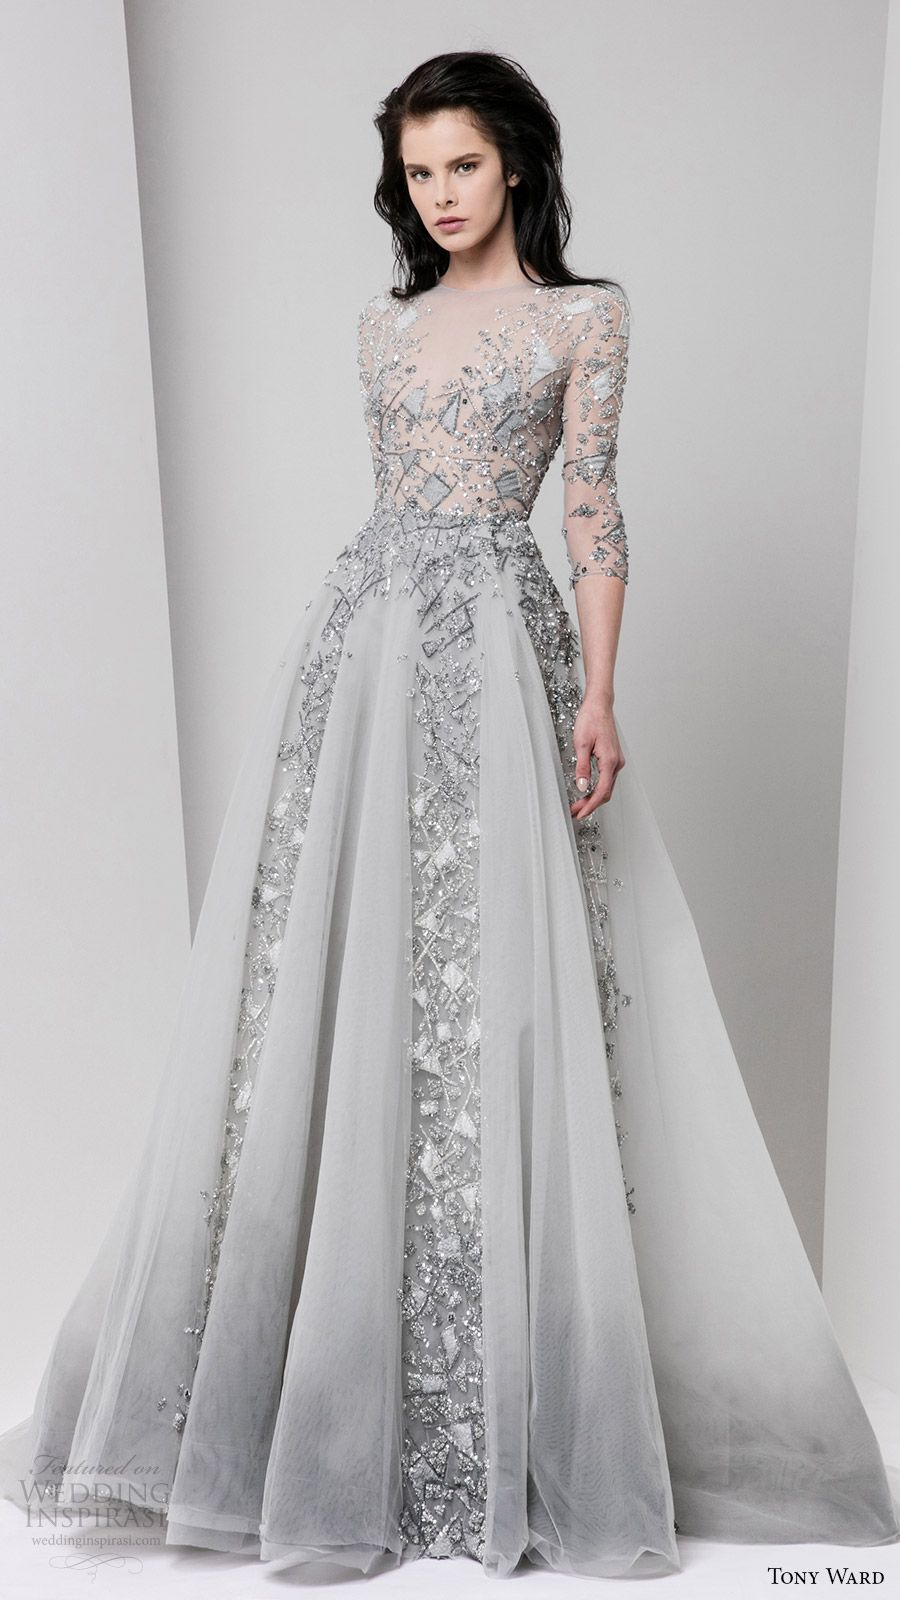 Tony Ward Fall 2016 Ready-to-Wear Dresses | Dresses | Pinterest ...